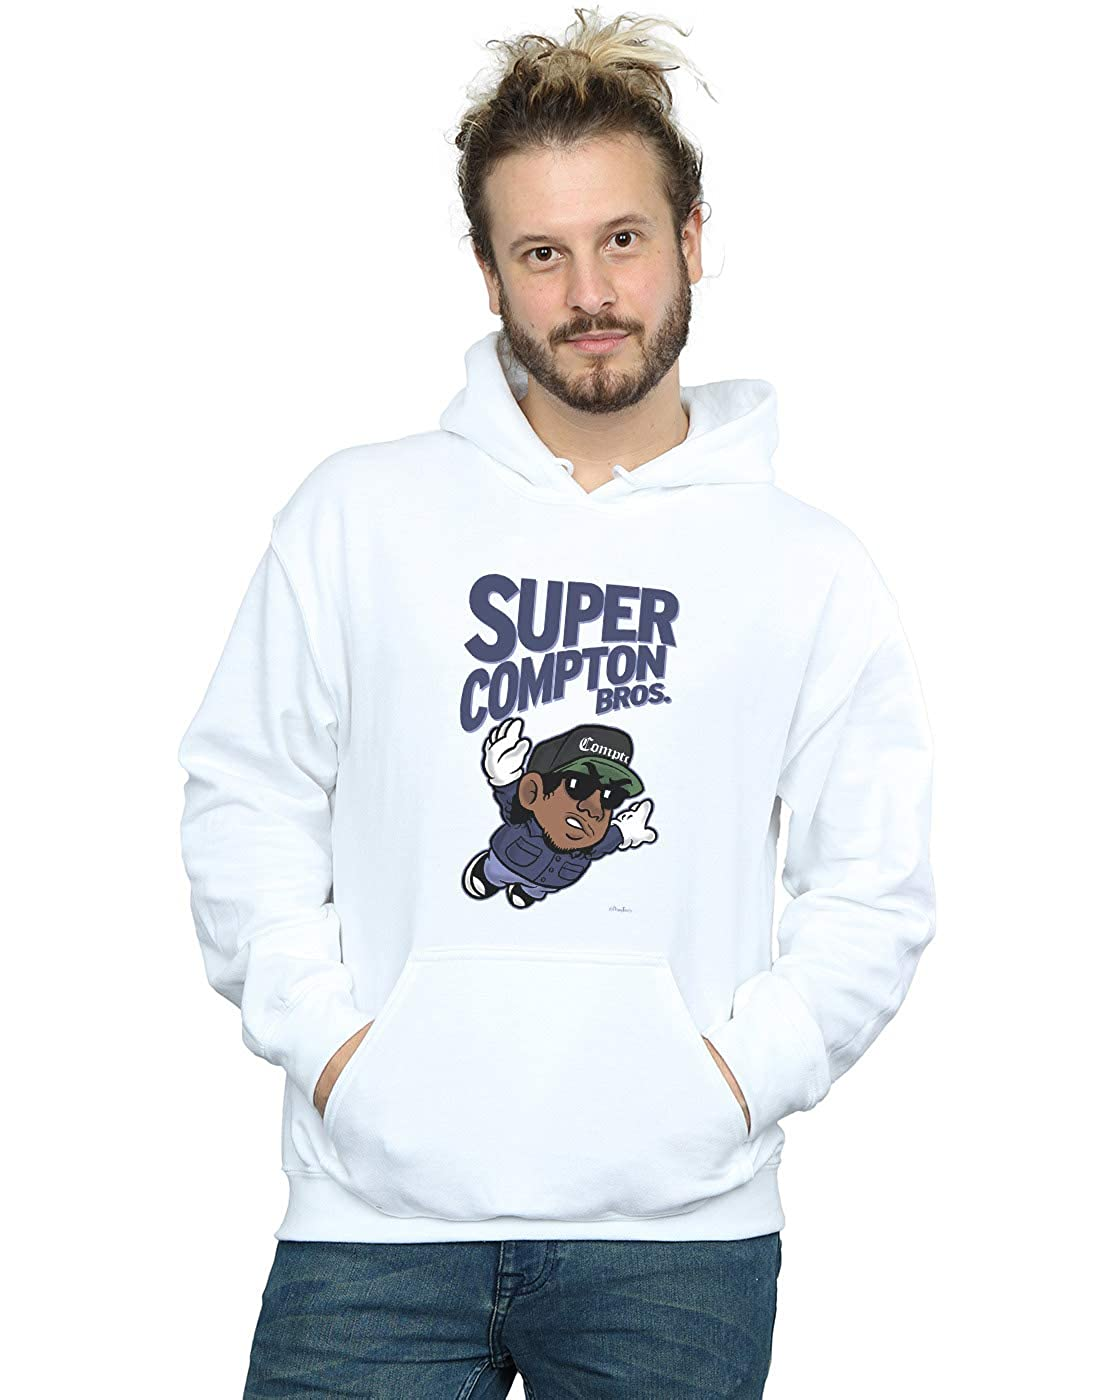 Absolute Cult Pennytees Homme Super Compton Bros Sweat À